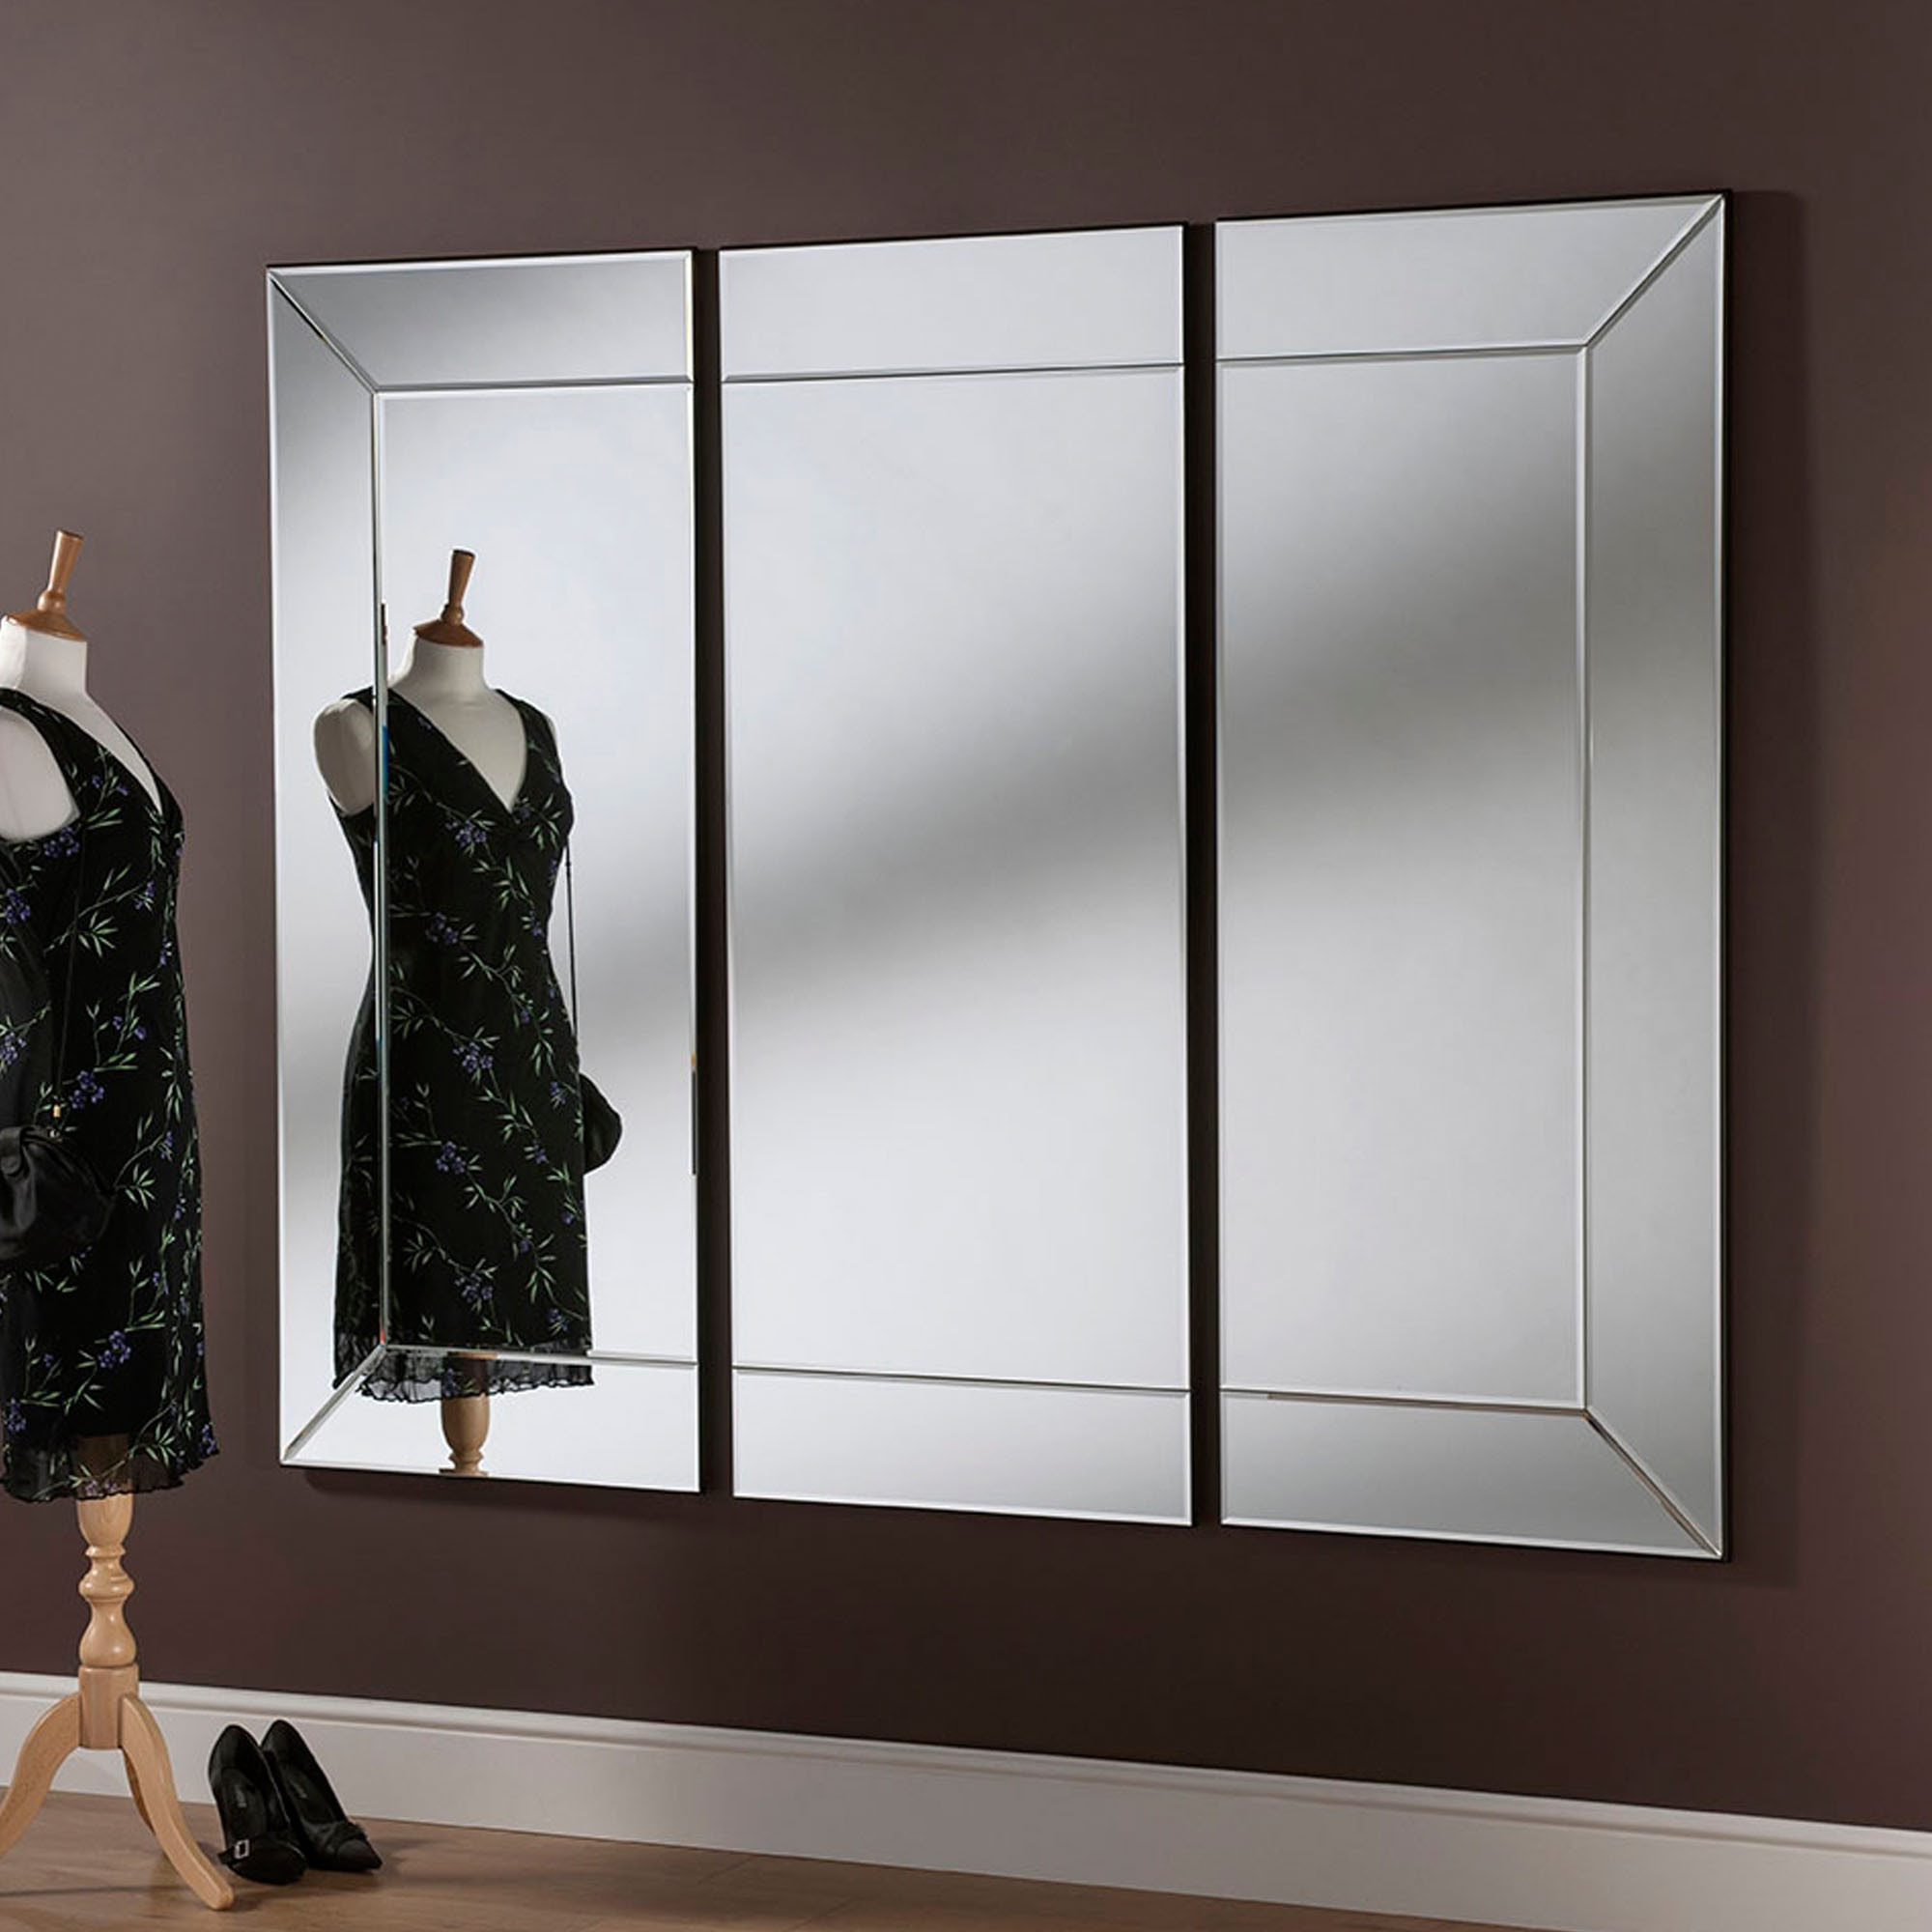 Trendy Mayfair 3 Panel Wall Mirror Intended For Panel Wall Mirrors (View 10 of 20)